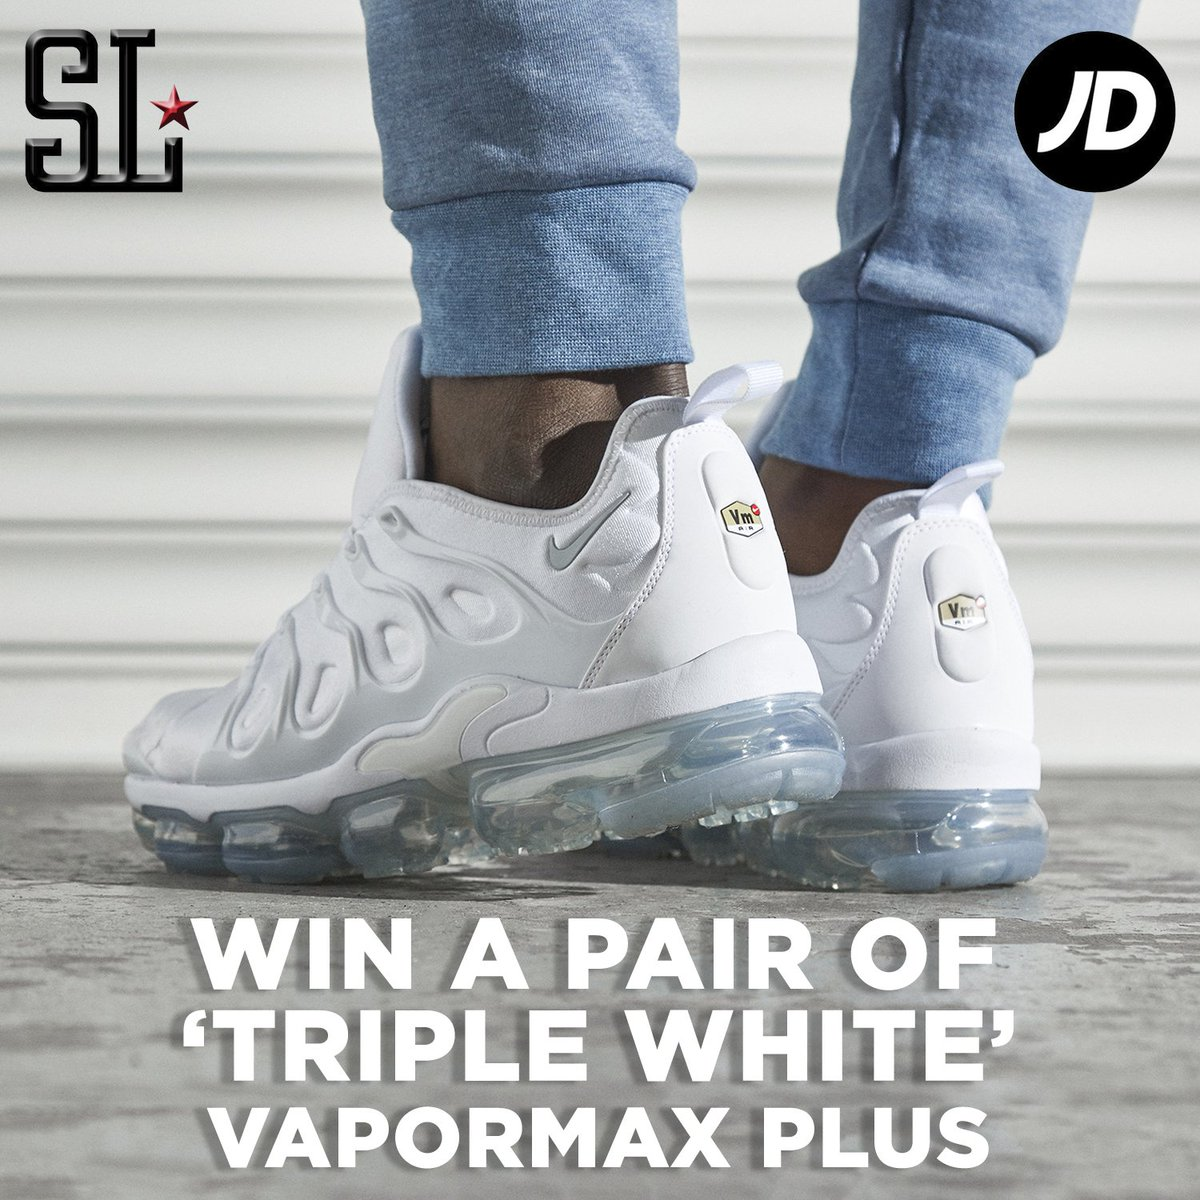 892c6a0853 ... pair of Nike Air VaporMax Plus 'White' - will pick a winner on Feb  20th. Must be following @SOLELINKS and @JDOfficial. Details =>  http://bit.ly/2EZr2lj ...